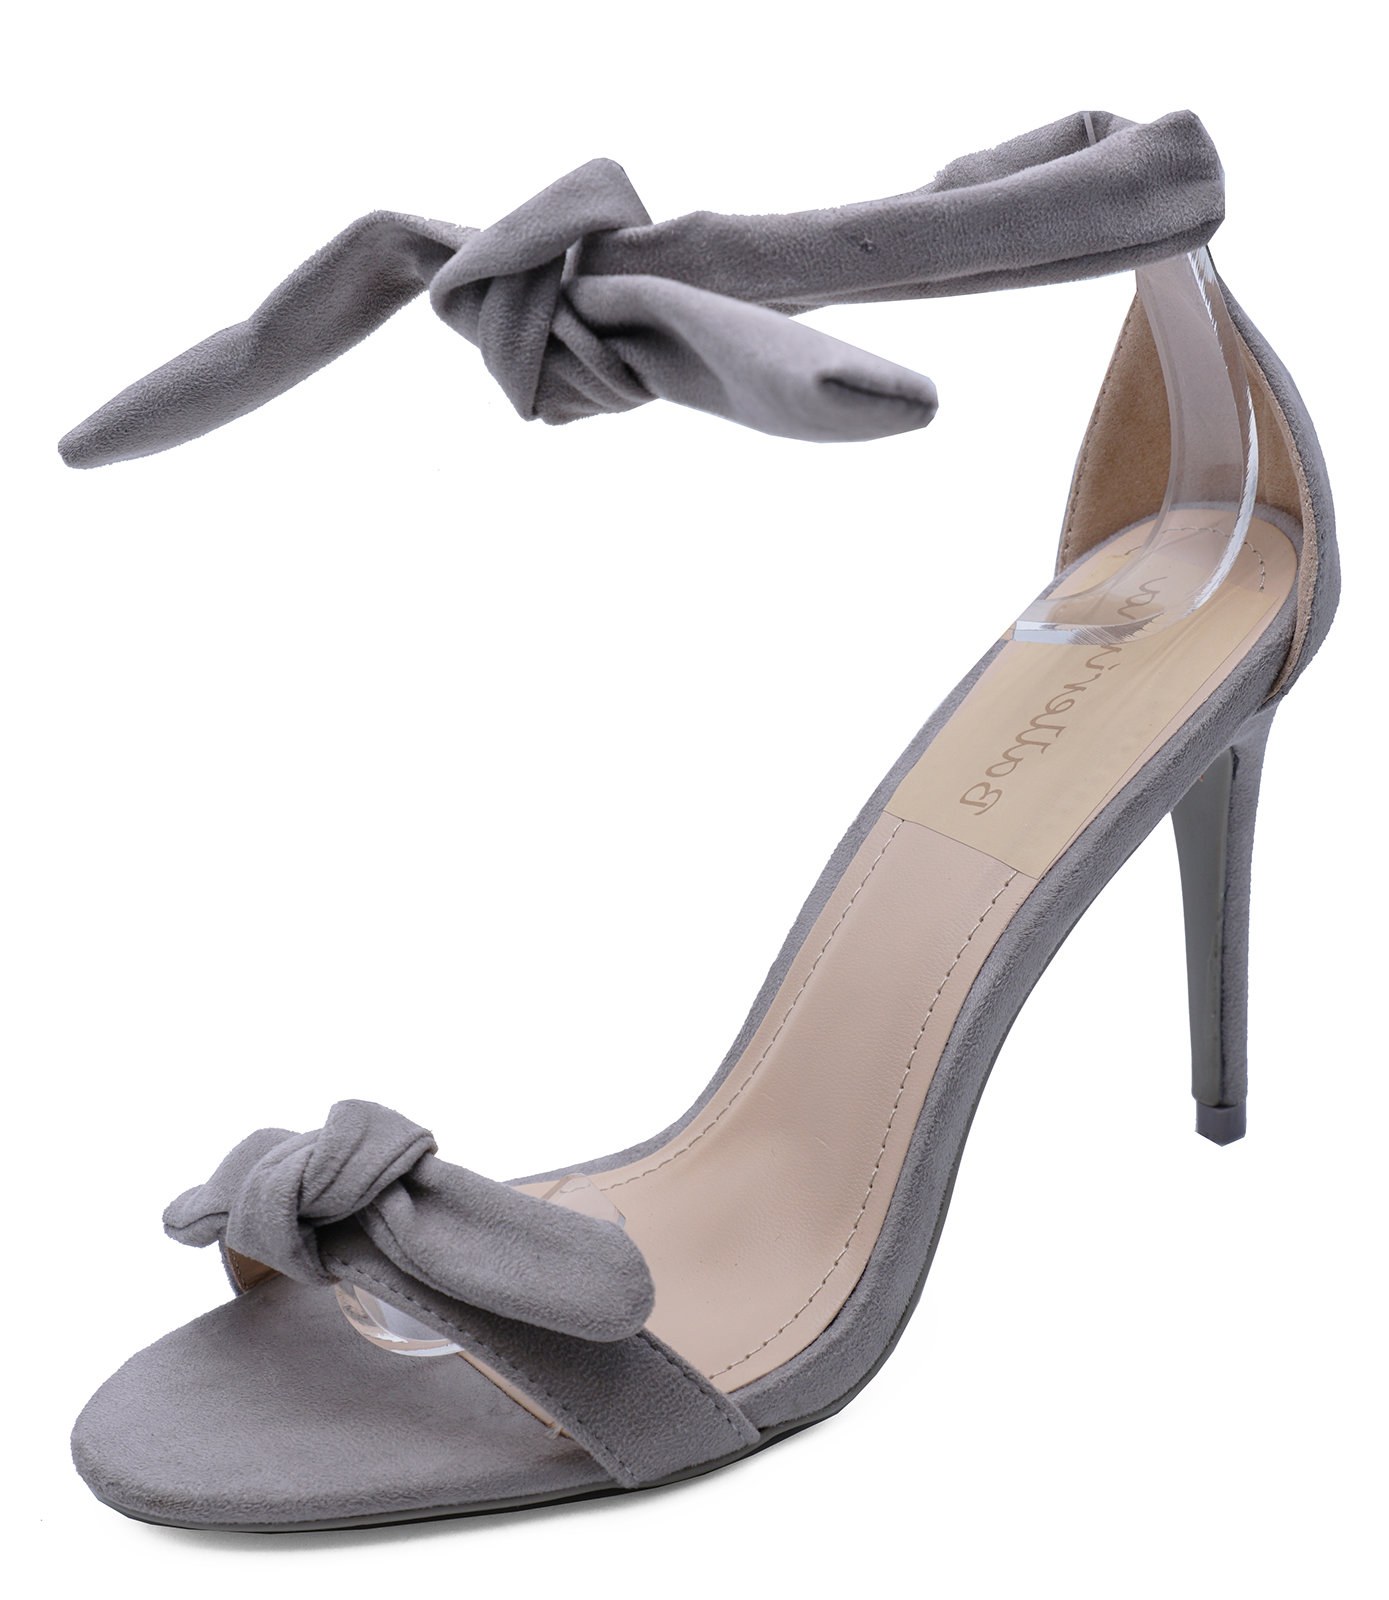 7908fac6c84 Sentinel WOMENS GREY OPEN-TOE PARTY WEDDING PROM EVENING STRAPPY SANDALS  SHOES UK 3-8